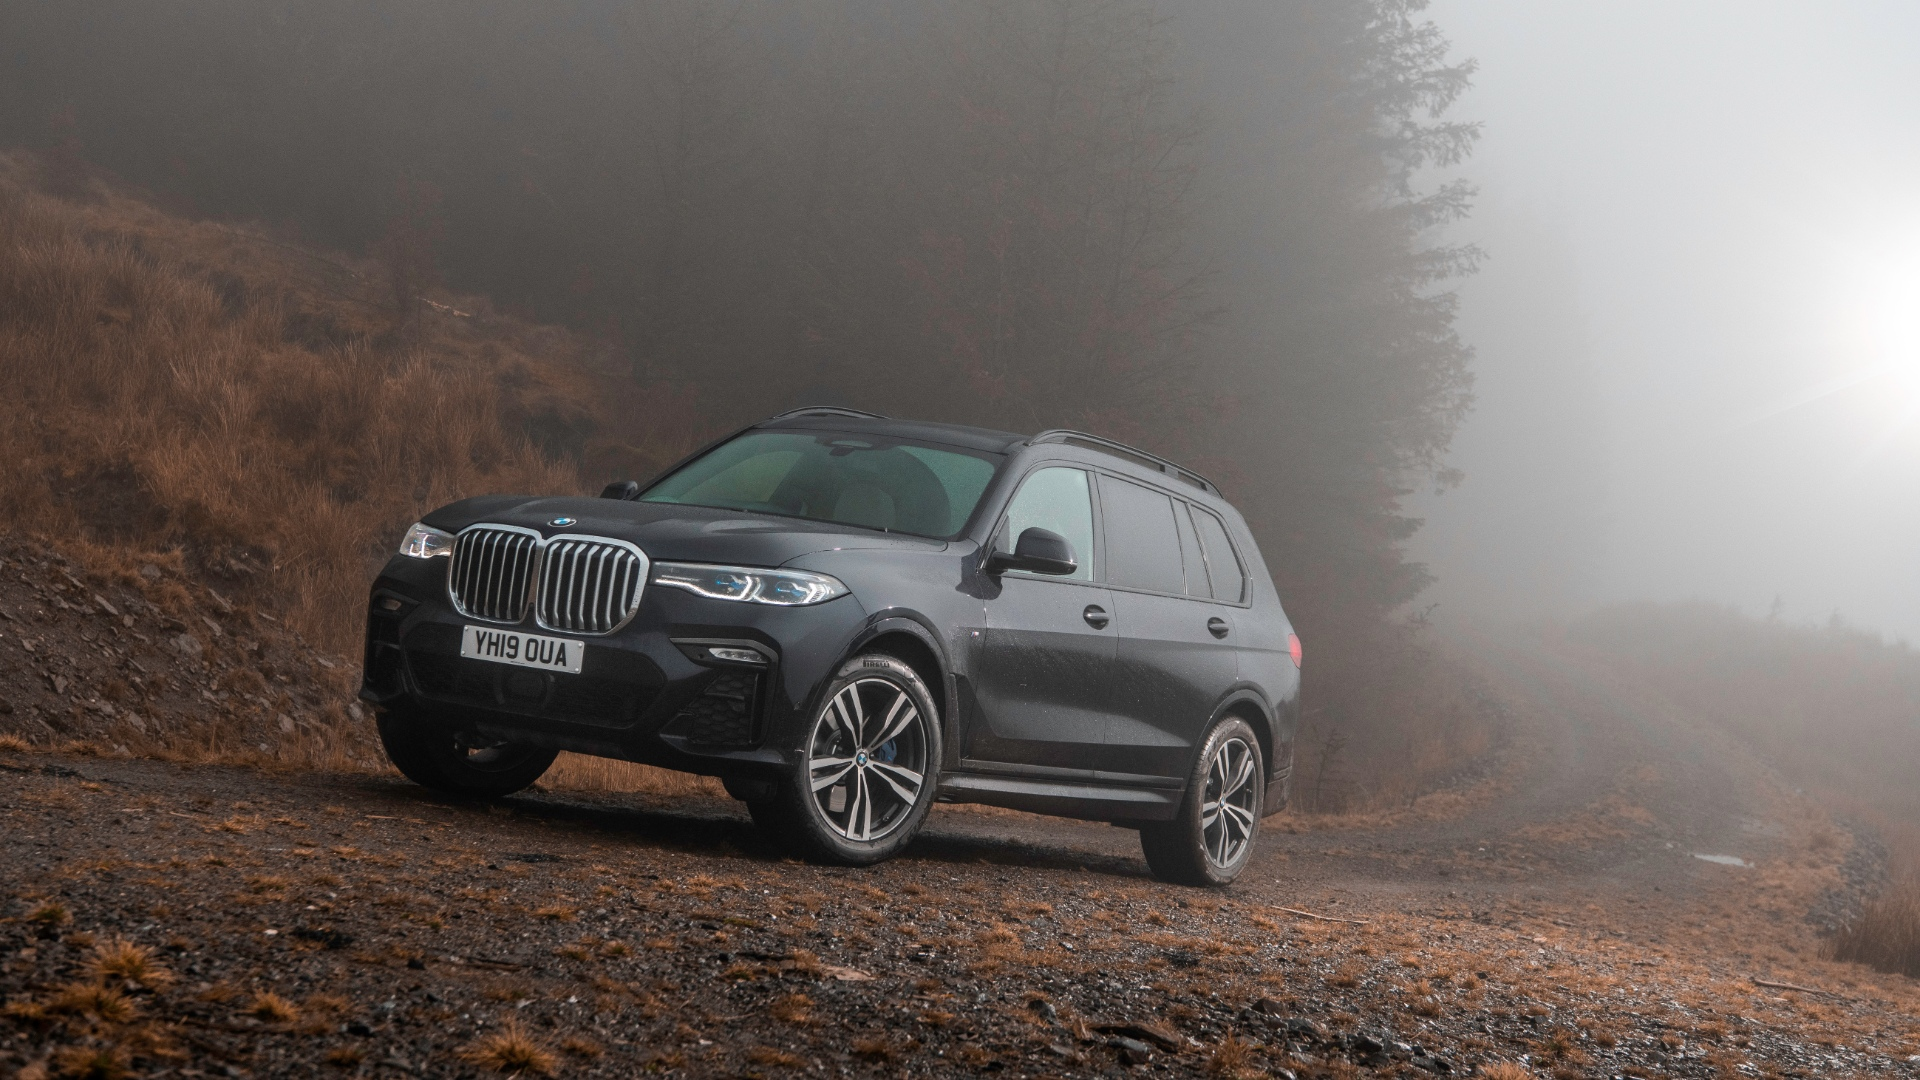 BMW X7 Mercedes GLS